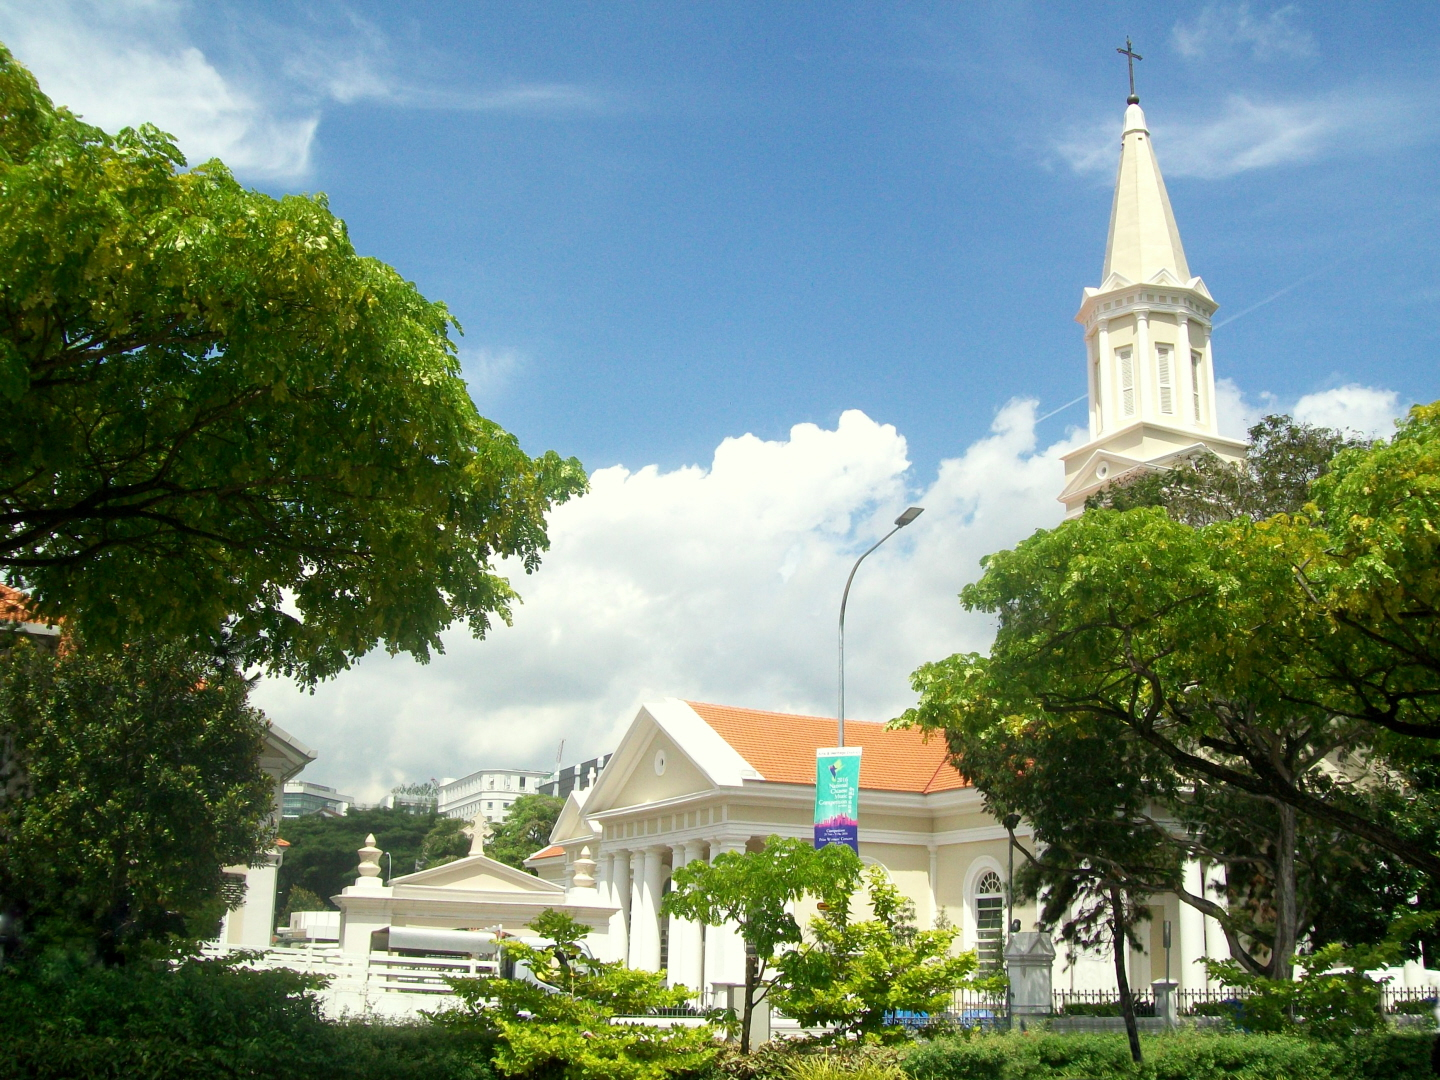 Cathedral of the Good Shepherd - Church of the Archdiocese - 1827 - Singapore